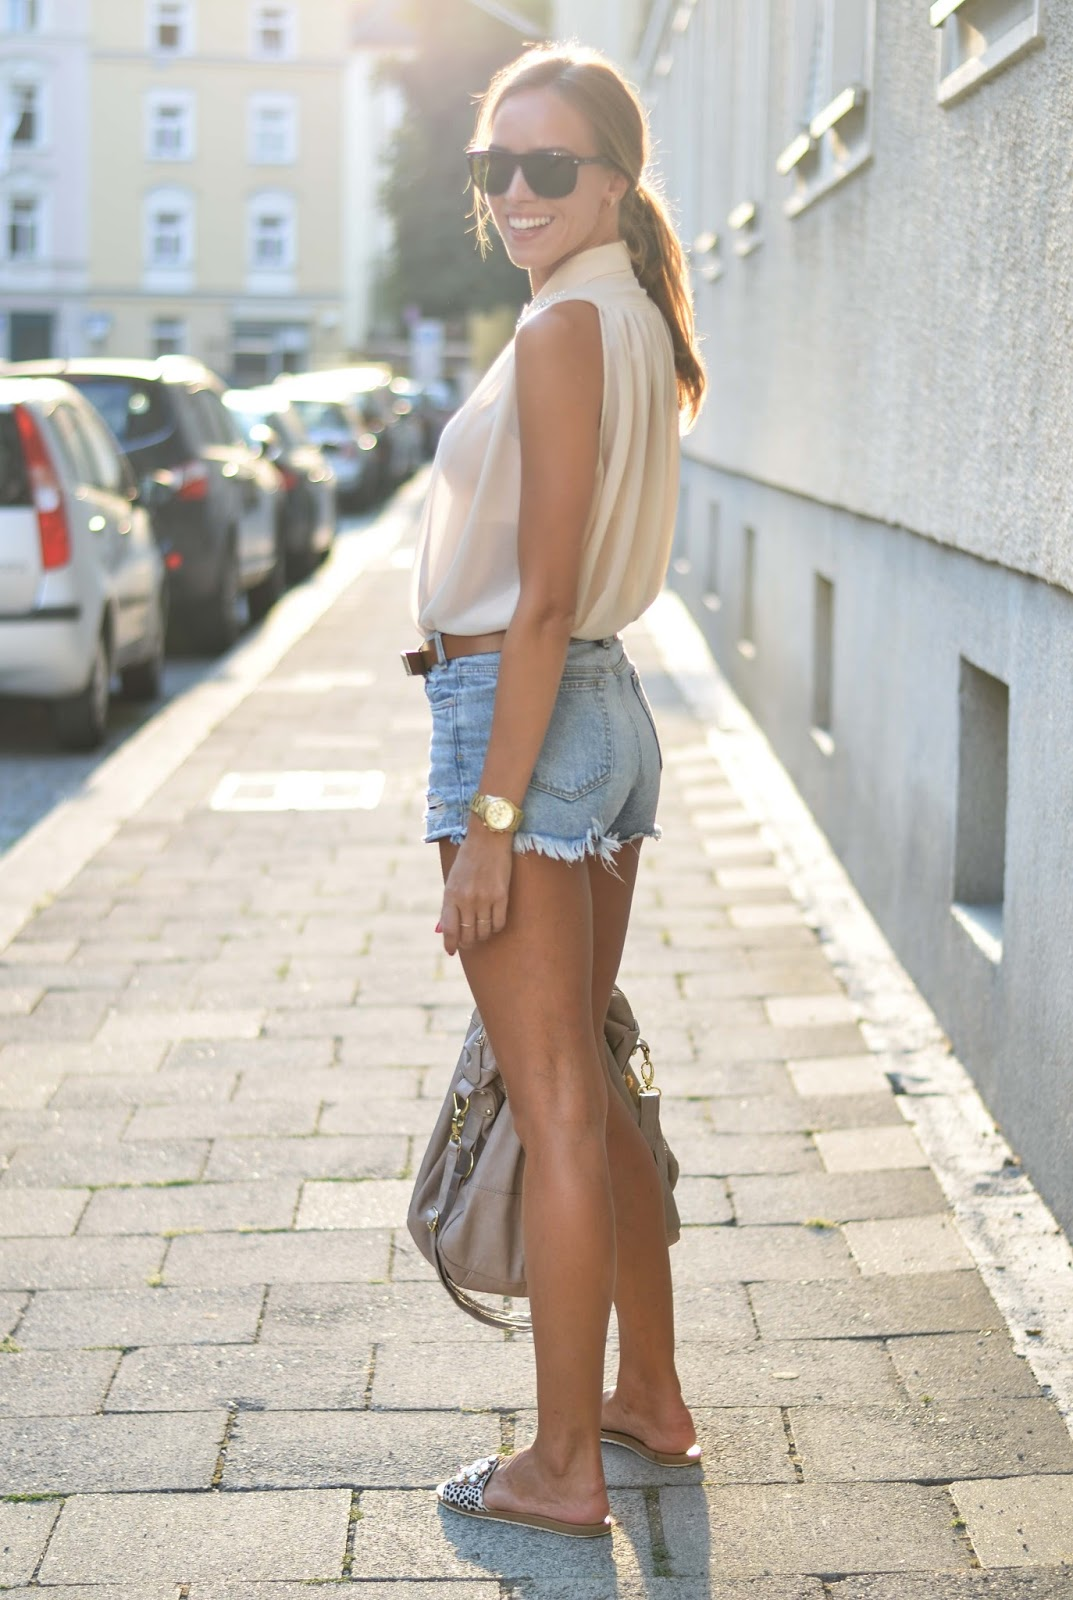 kristjaana mere denim shorts sleeveless top flat sandals summer outfit idea